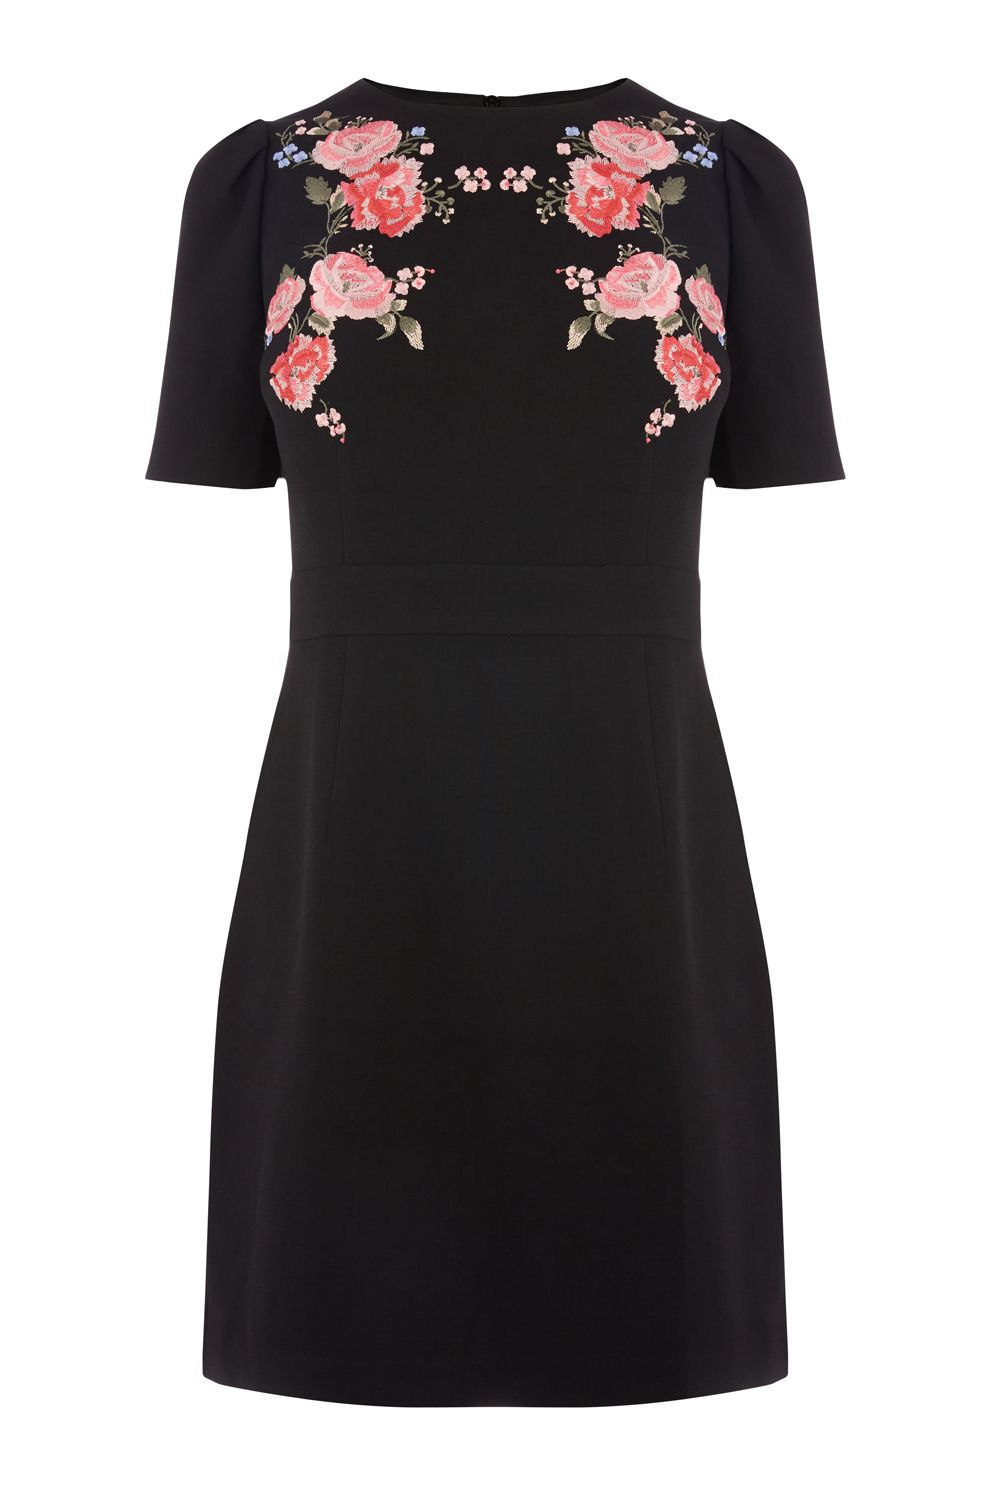 Oasis Rose Embroidered Shift Dress, Multi-Coloured